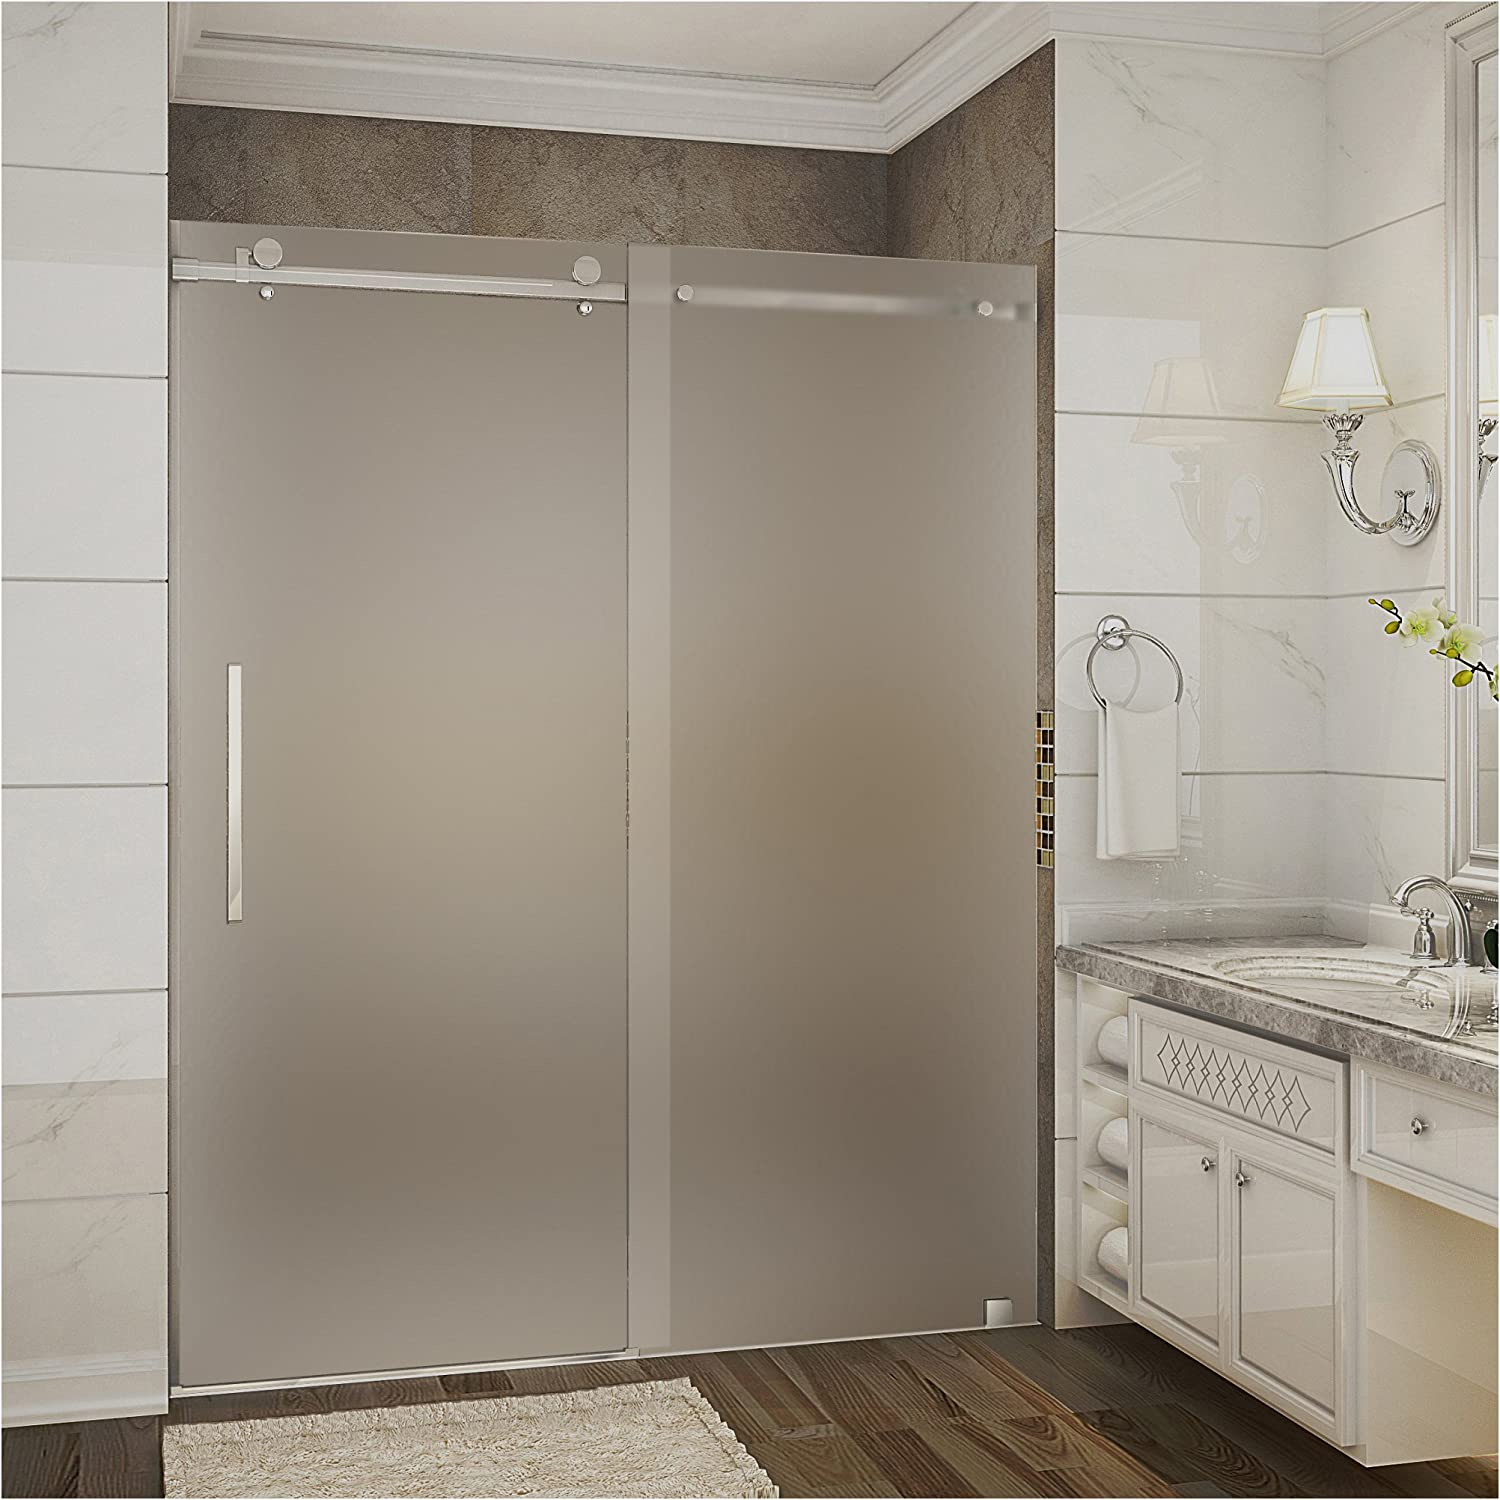 Aston Moselle 56 60 X 75 Completely Frameless Sliding Shower Door In Frosted Glass Brushed Stainless Steel Amazon Com